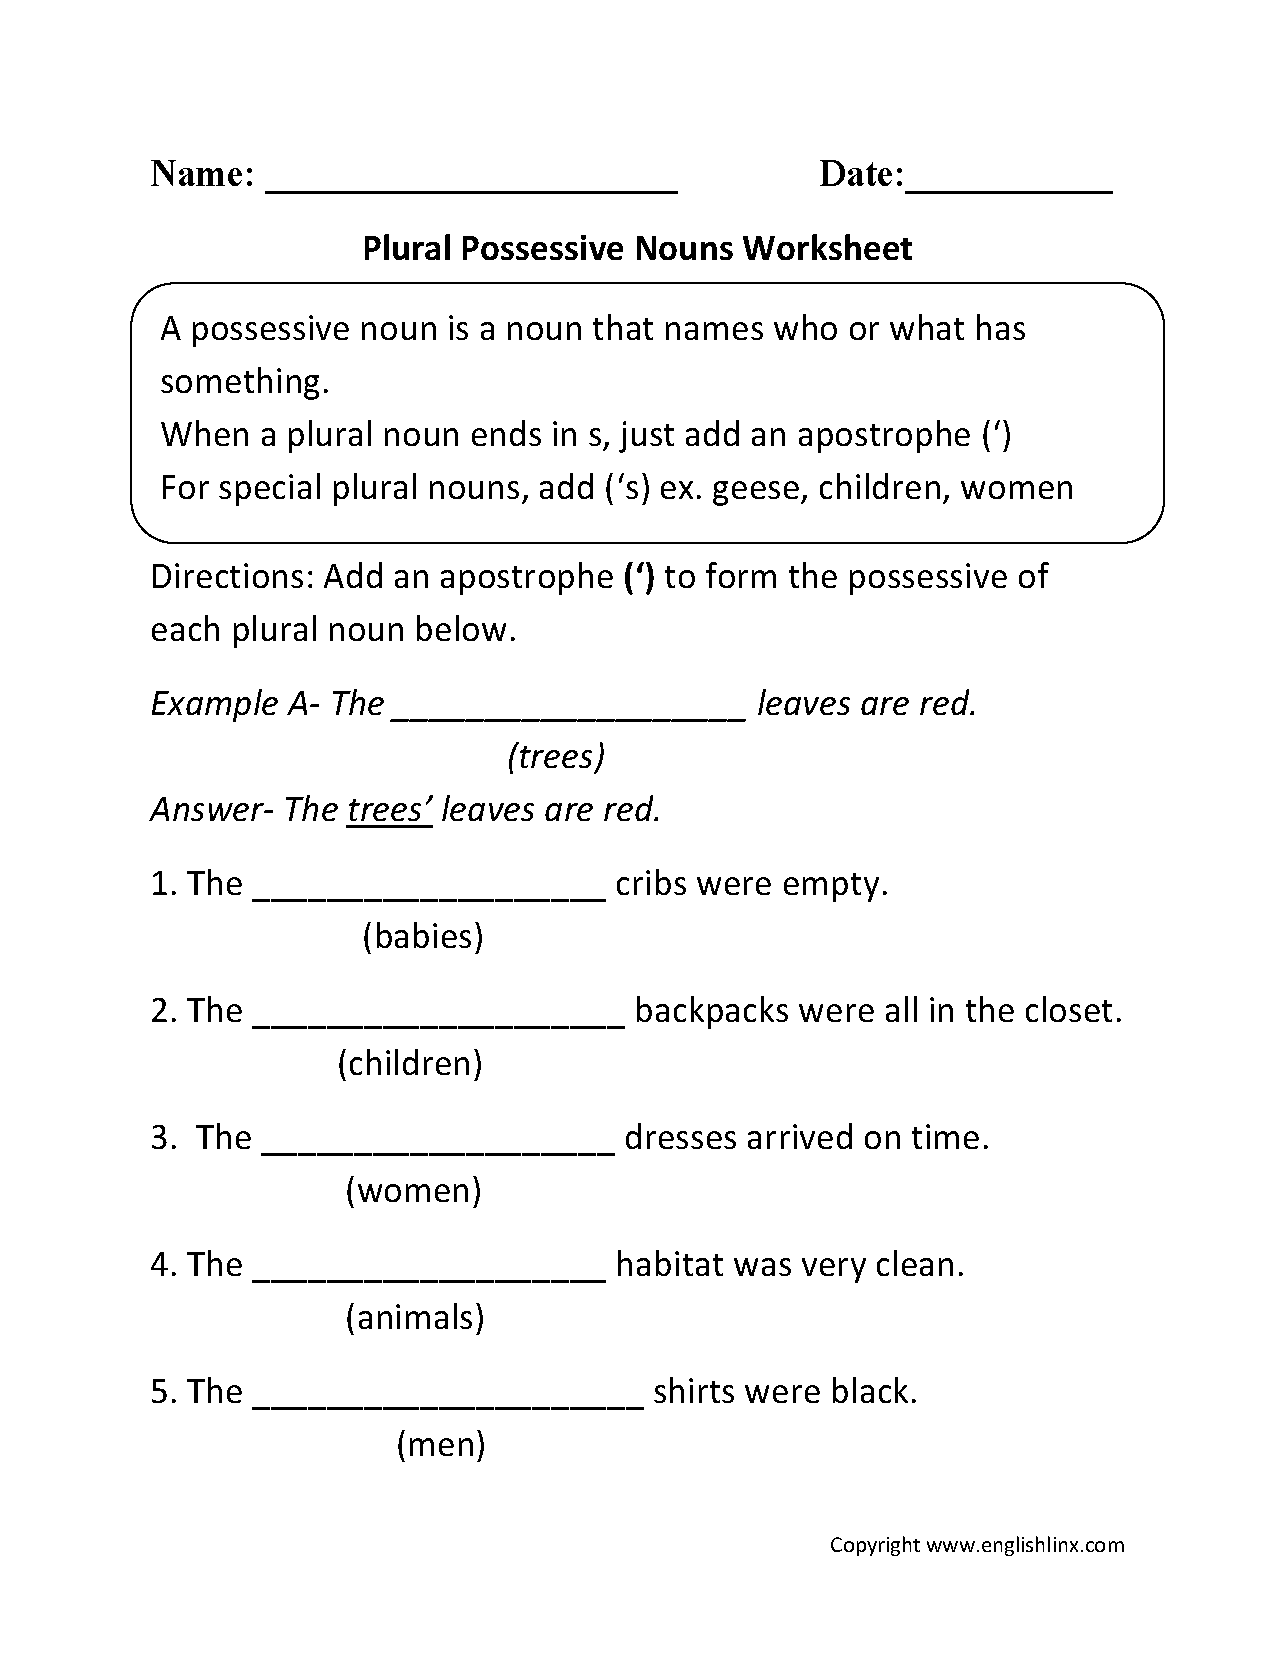 Worksheets Noun Worksheets 3rd Grade plural possessive nouns worksheets more